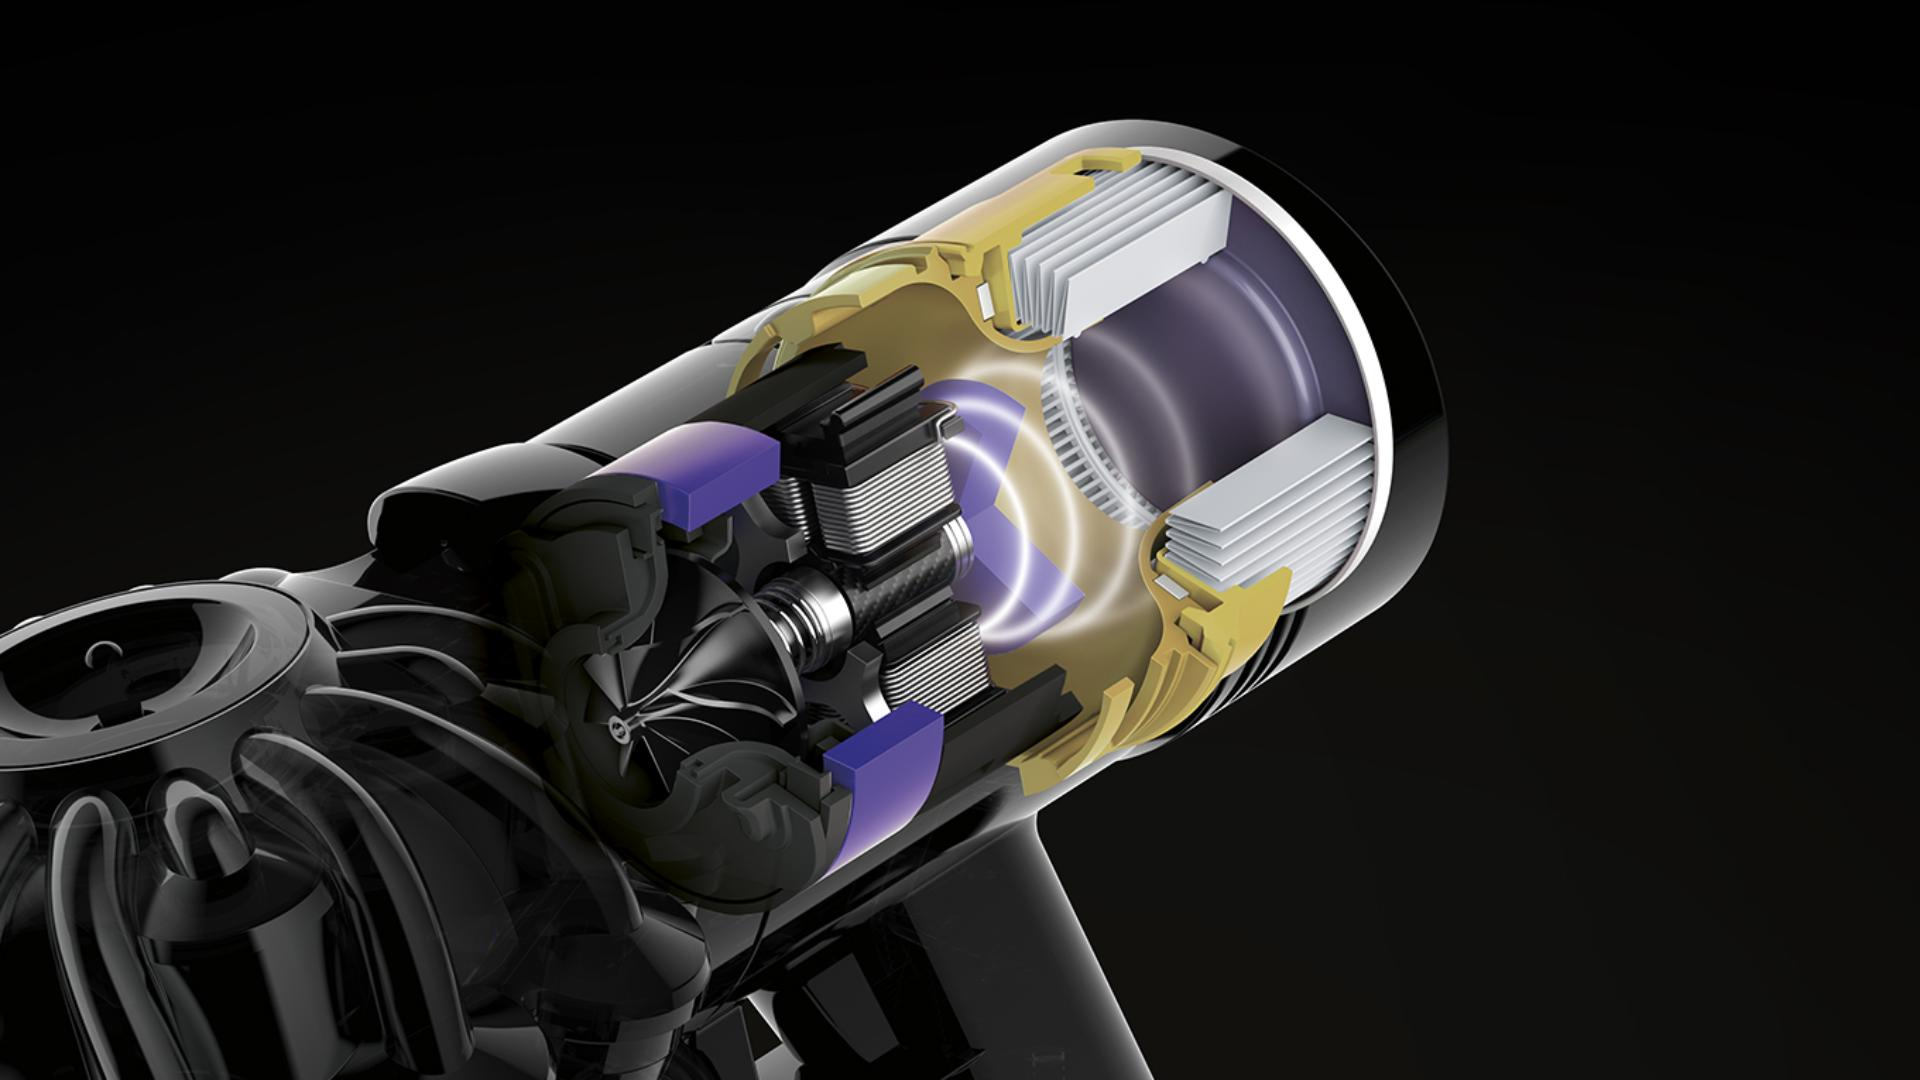 Illustration of Dyson V8 cord-free vacuum cleaner's advanced accoustic control.